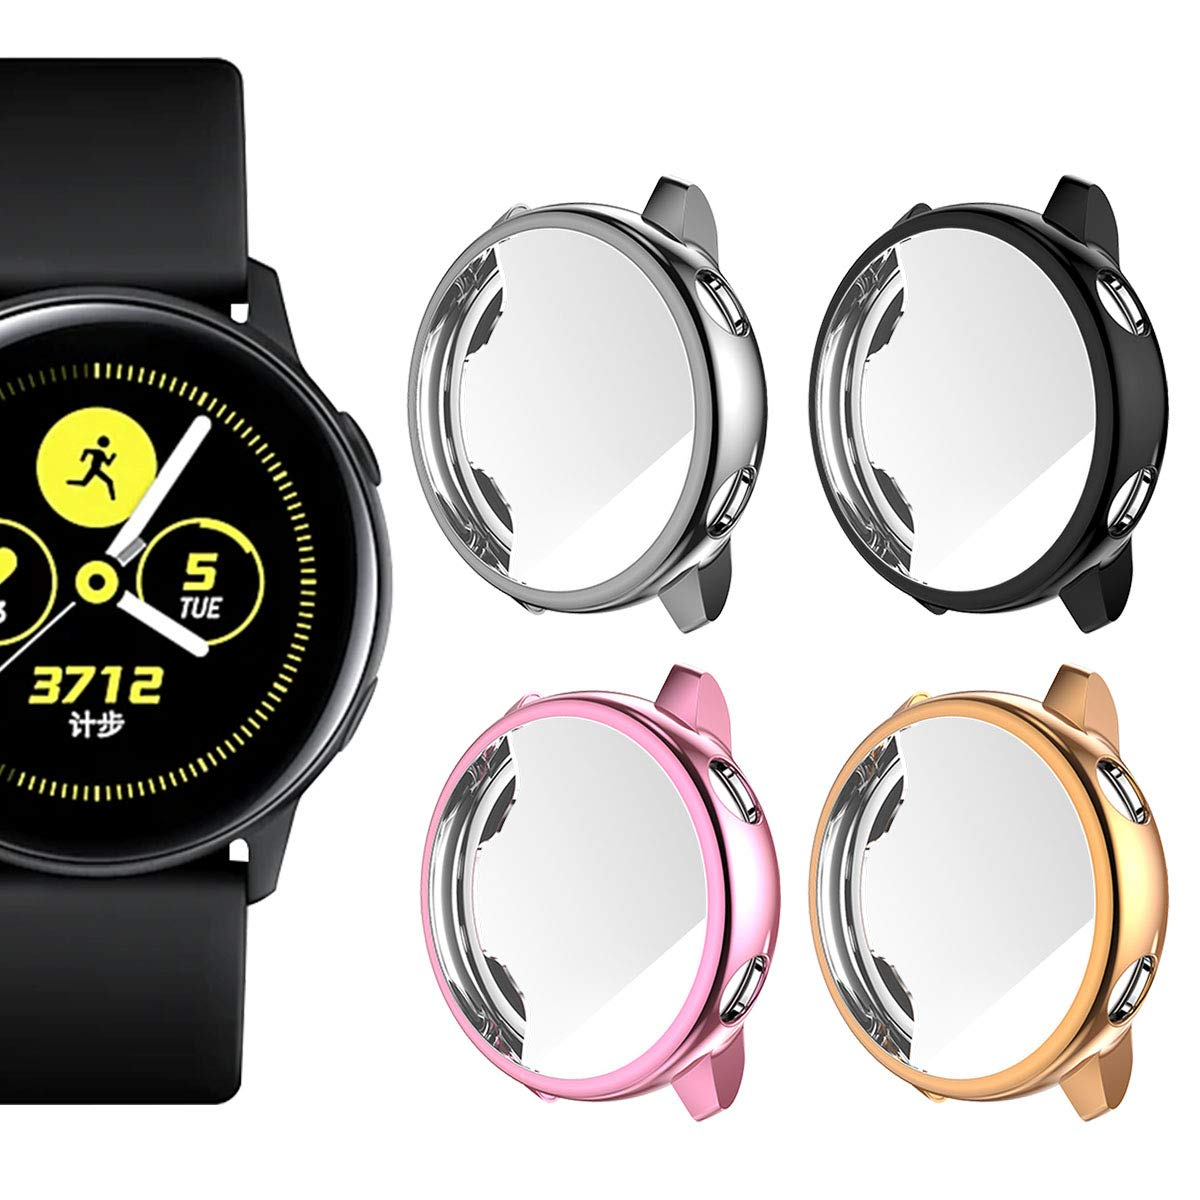 Landhoo Screen Protector for Samsung Galaxy Watch Active, Soft TPU Full Coverage Case, Electroplate Protective Cover Shell (Black+Grey+Rose Gold+Pink)